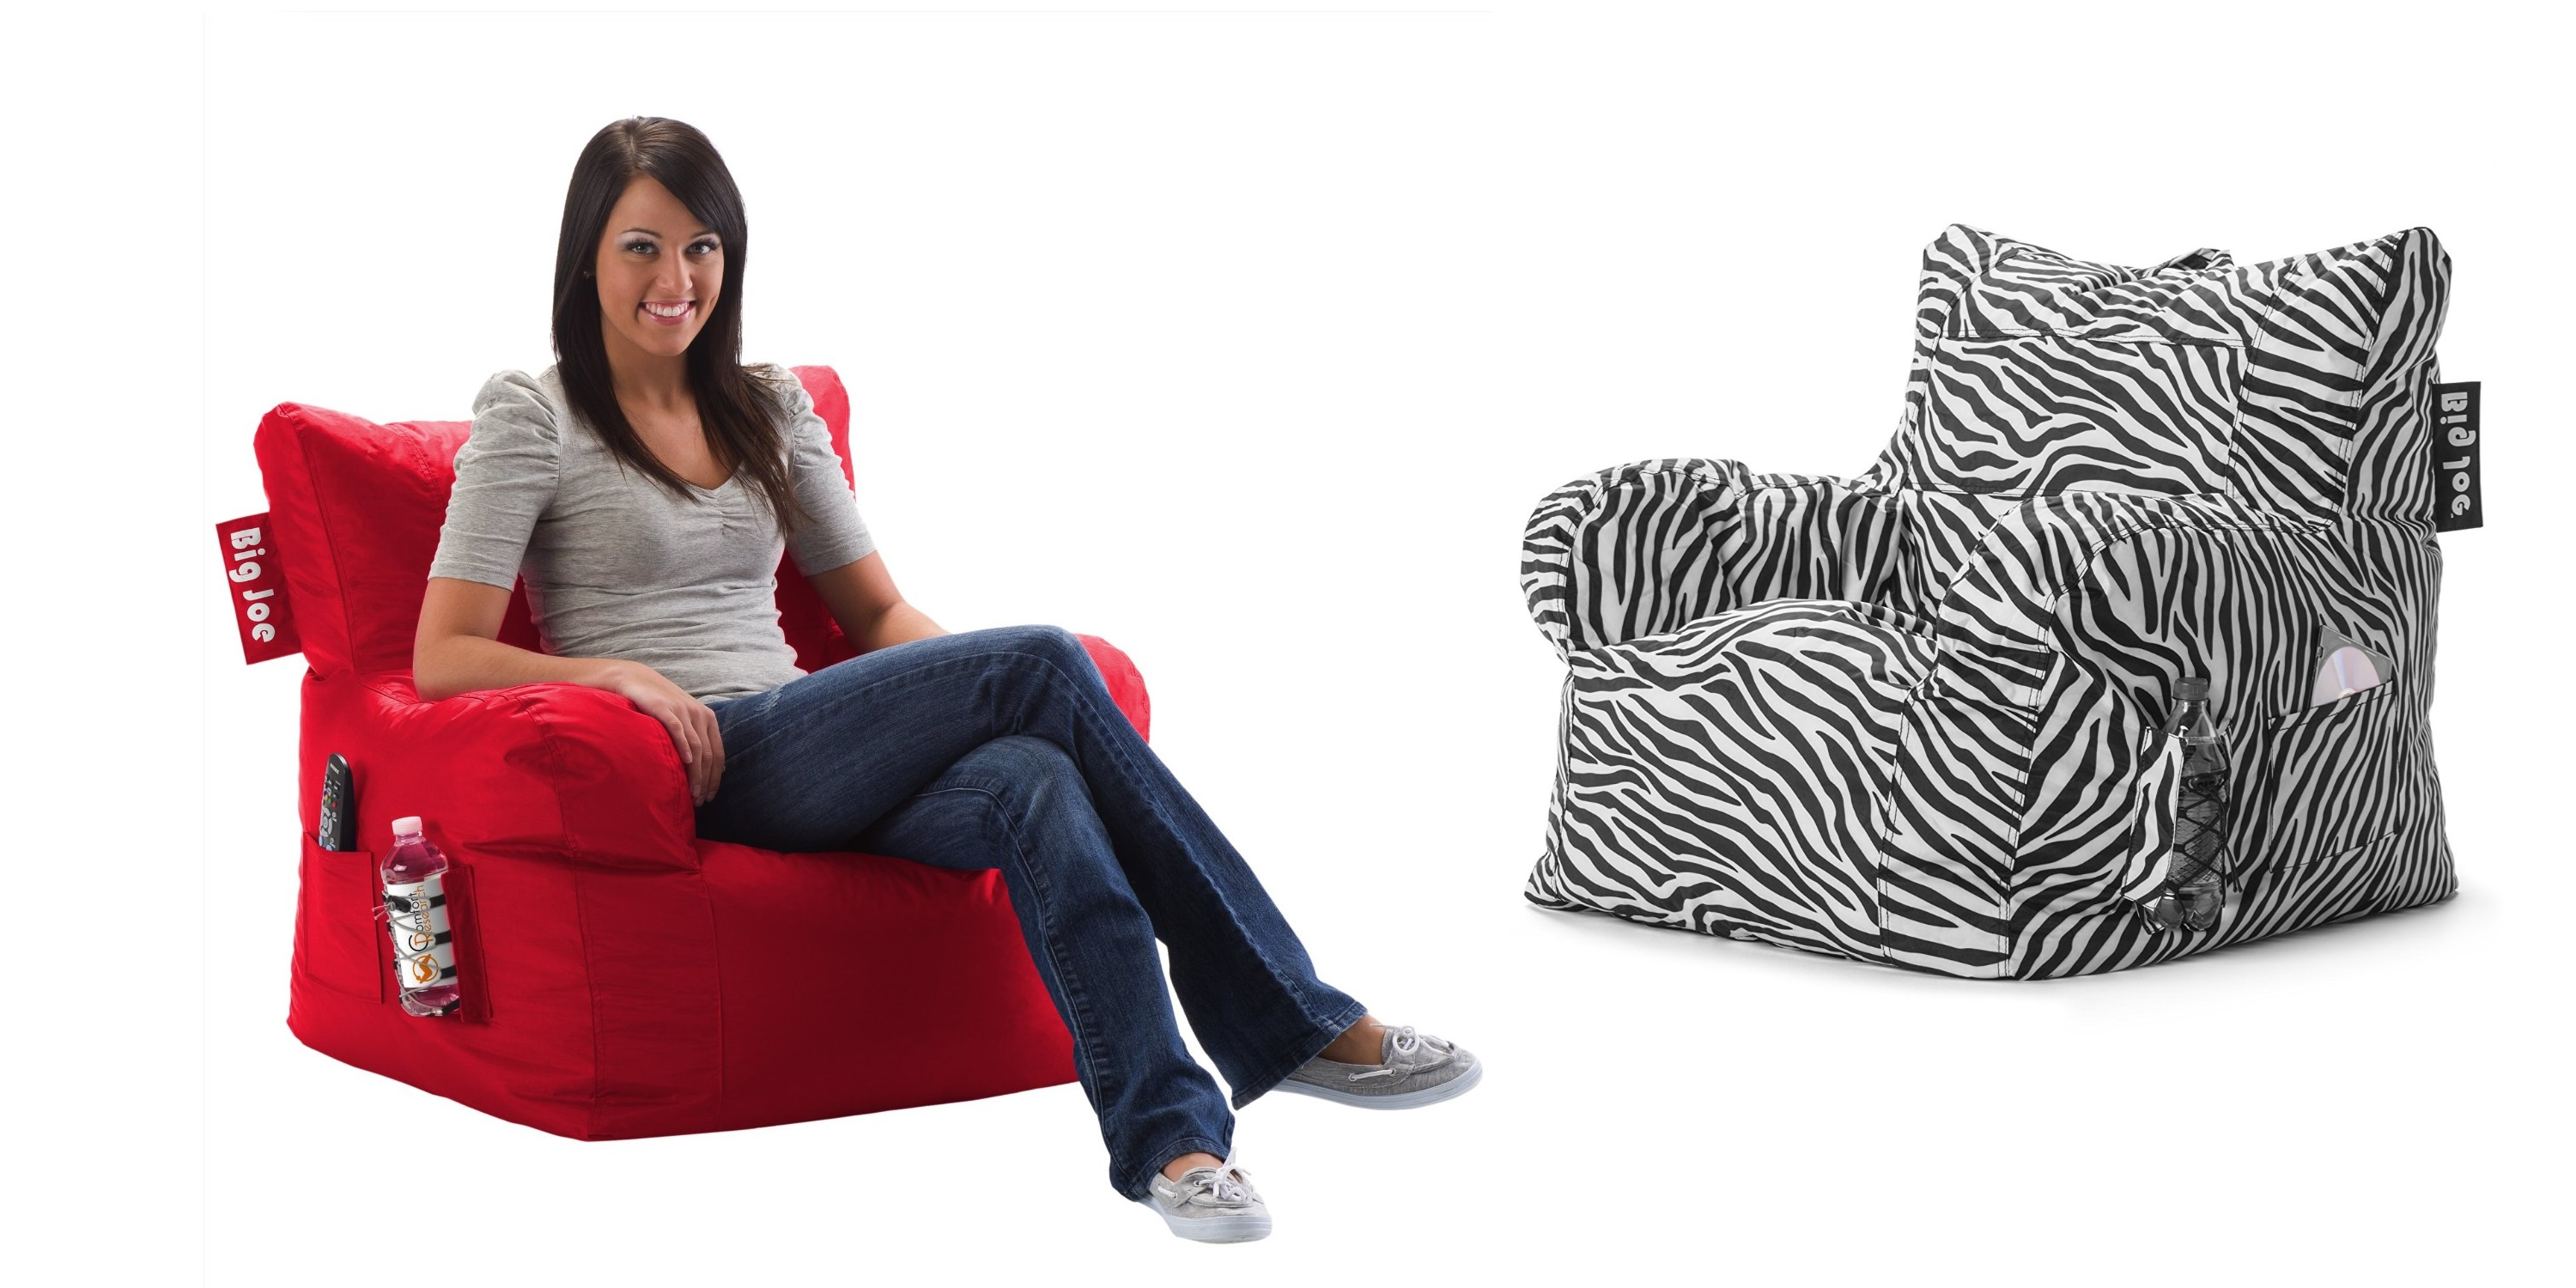 big joe chairs at target chair accessories for posture dorm bean bag only 24 88 freebies2deals